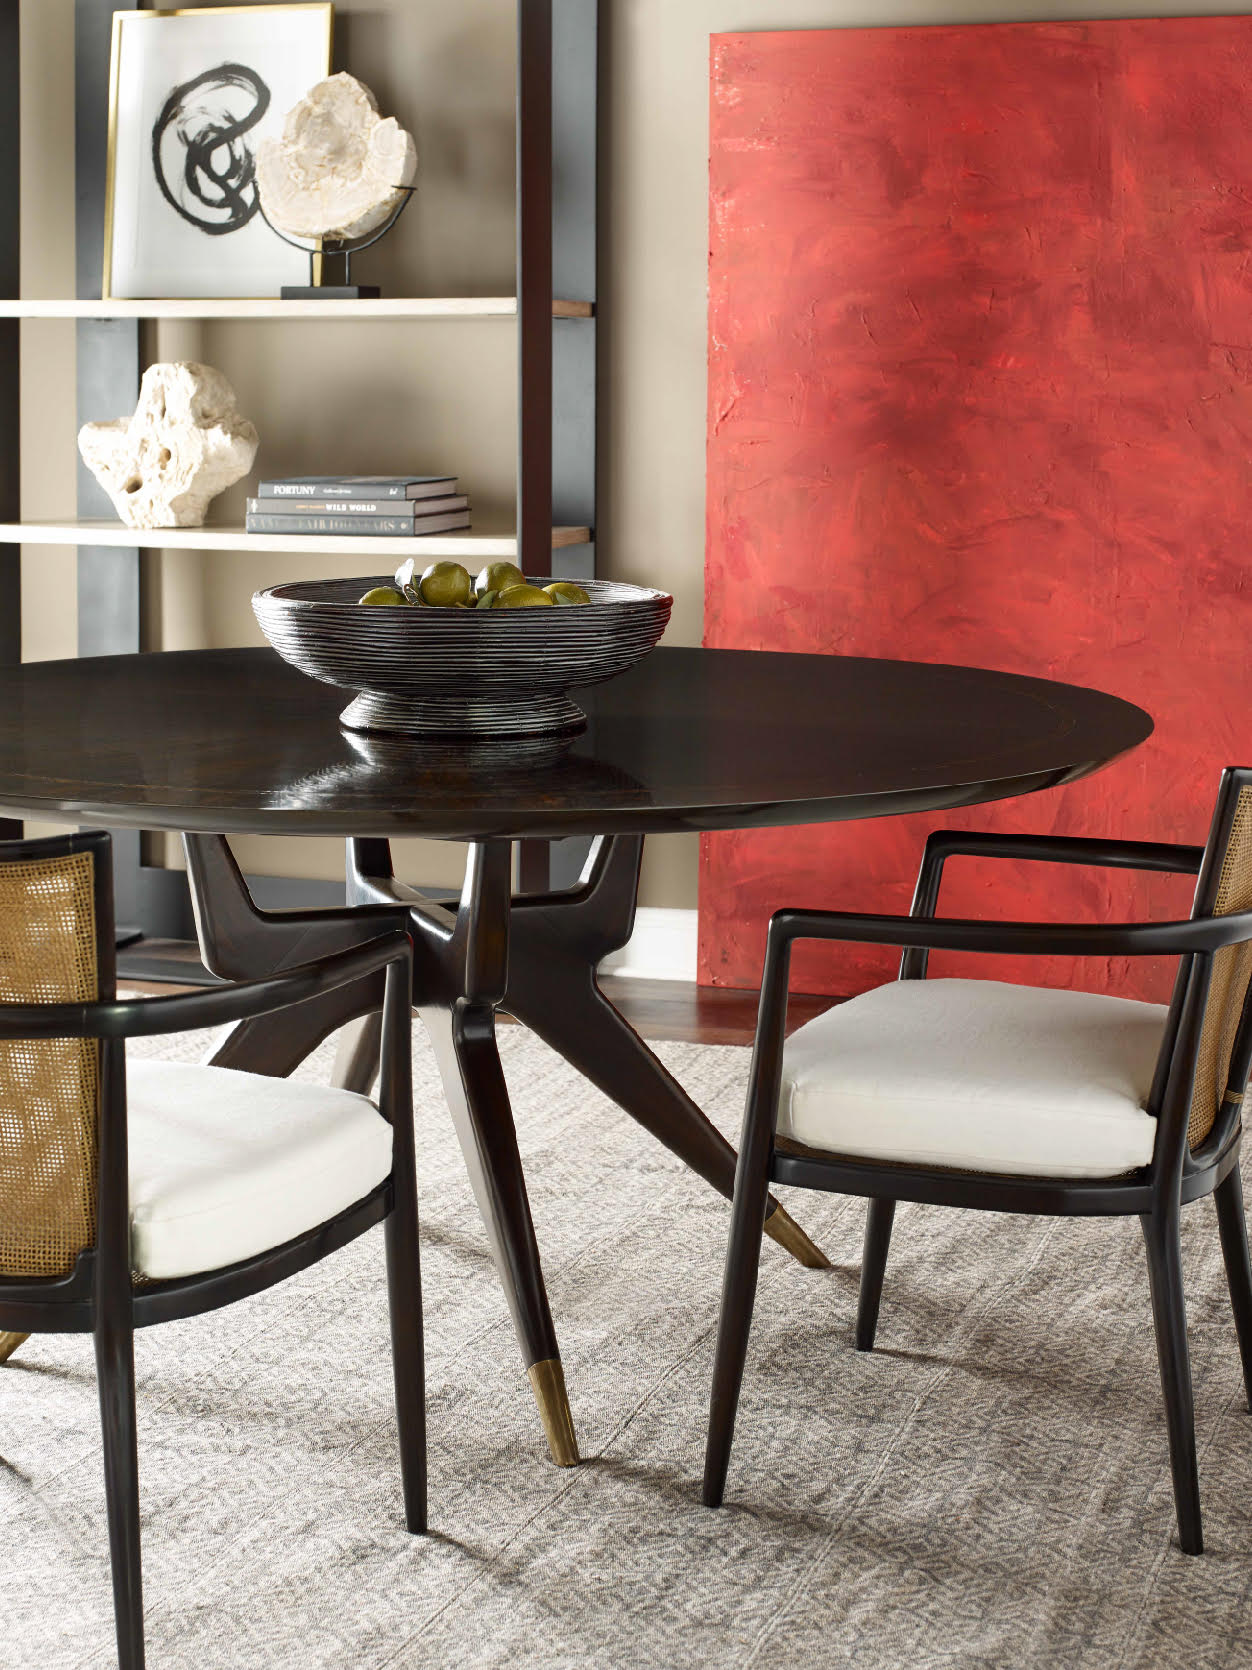 Alfonso Marina On Twitter A Touch Of Modern Art Turns The Space Into An Inviting Contemporary Dining Setting Featuring Isabel Marina Art The Hoven Dining Table And Our Dreaux Chair Hovendiningtable Dreauxchair